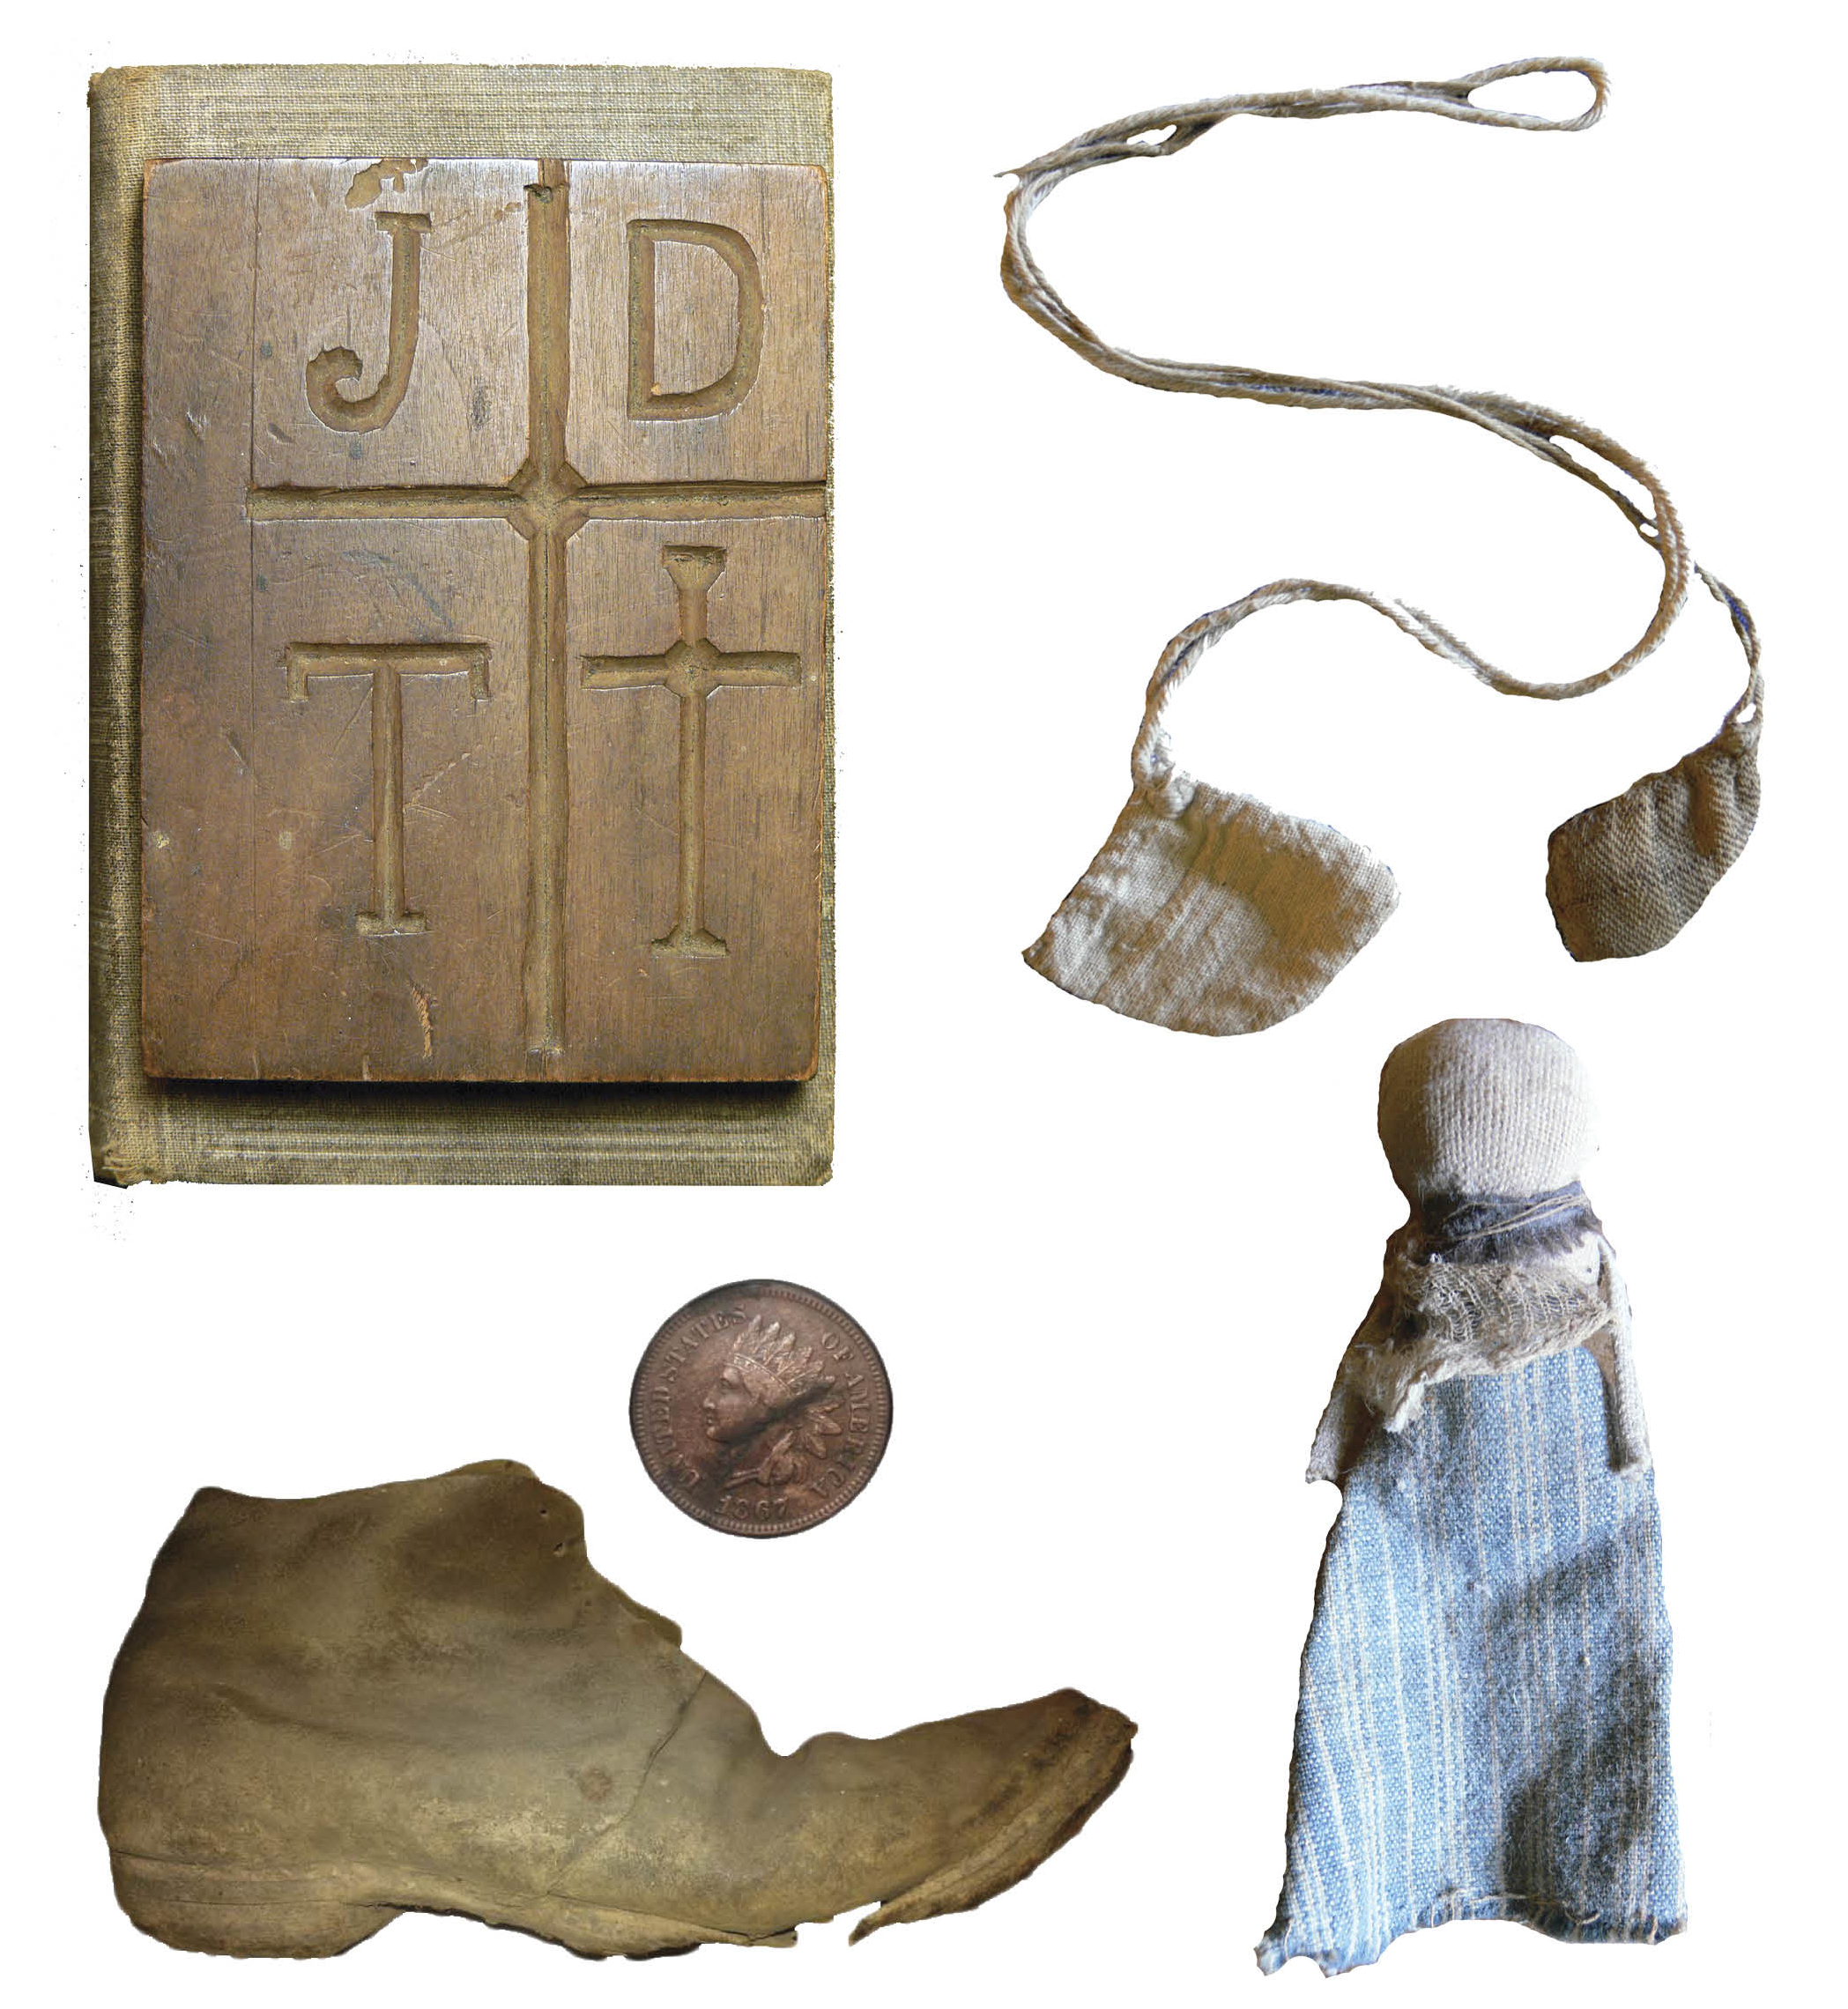 Figure 31:  Clockwise from top left : Bible-board with carved symbols, used by a powwow doctor near Emmaus, Lehigh County. Heilman Collection of Patrick J. Donmoyer. Gift of Willard Martin; Asaphoetida bags used to ward off illness, mid-19th Century, Lancaster County, Pennsylvania. Courtesy of Clarke Hess; Ritual doll, concealed in late 18th-century Lancaster County log house. Courtesy of Clarke Hess; Concealed shoe and penny, discovered in 1867 log house from Bern Township, Berks County. Courtesy of Jim and Marcia Houston.